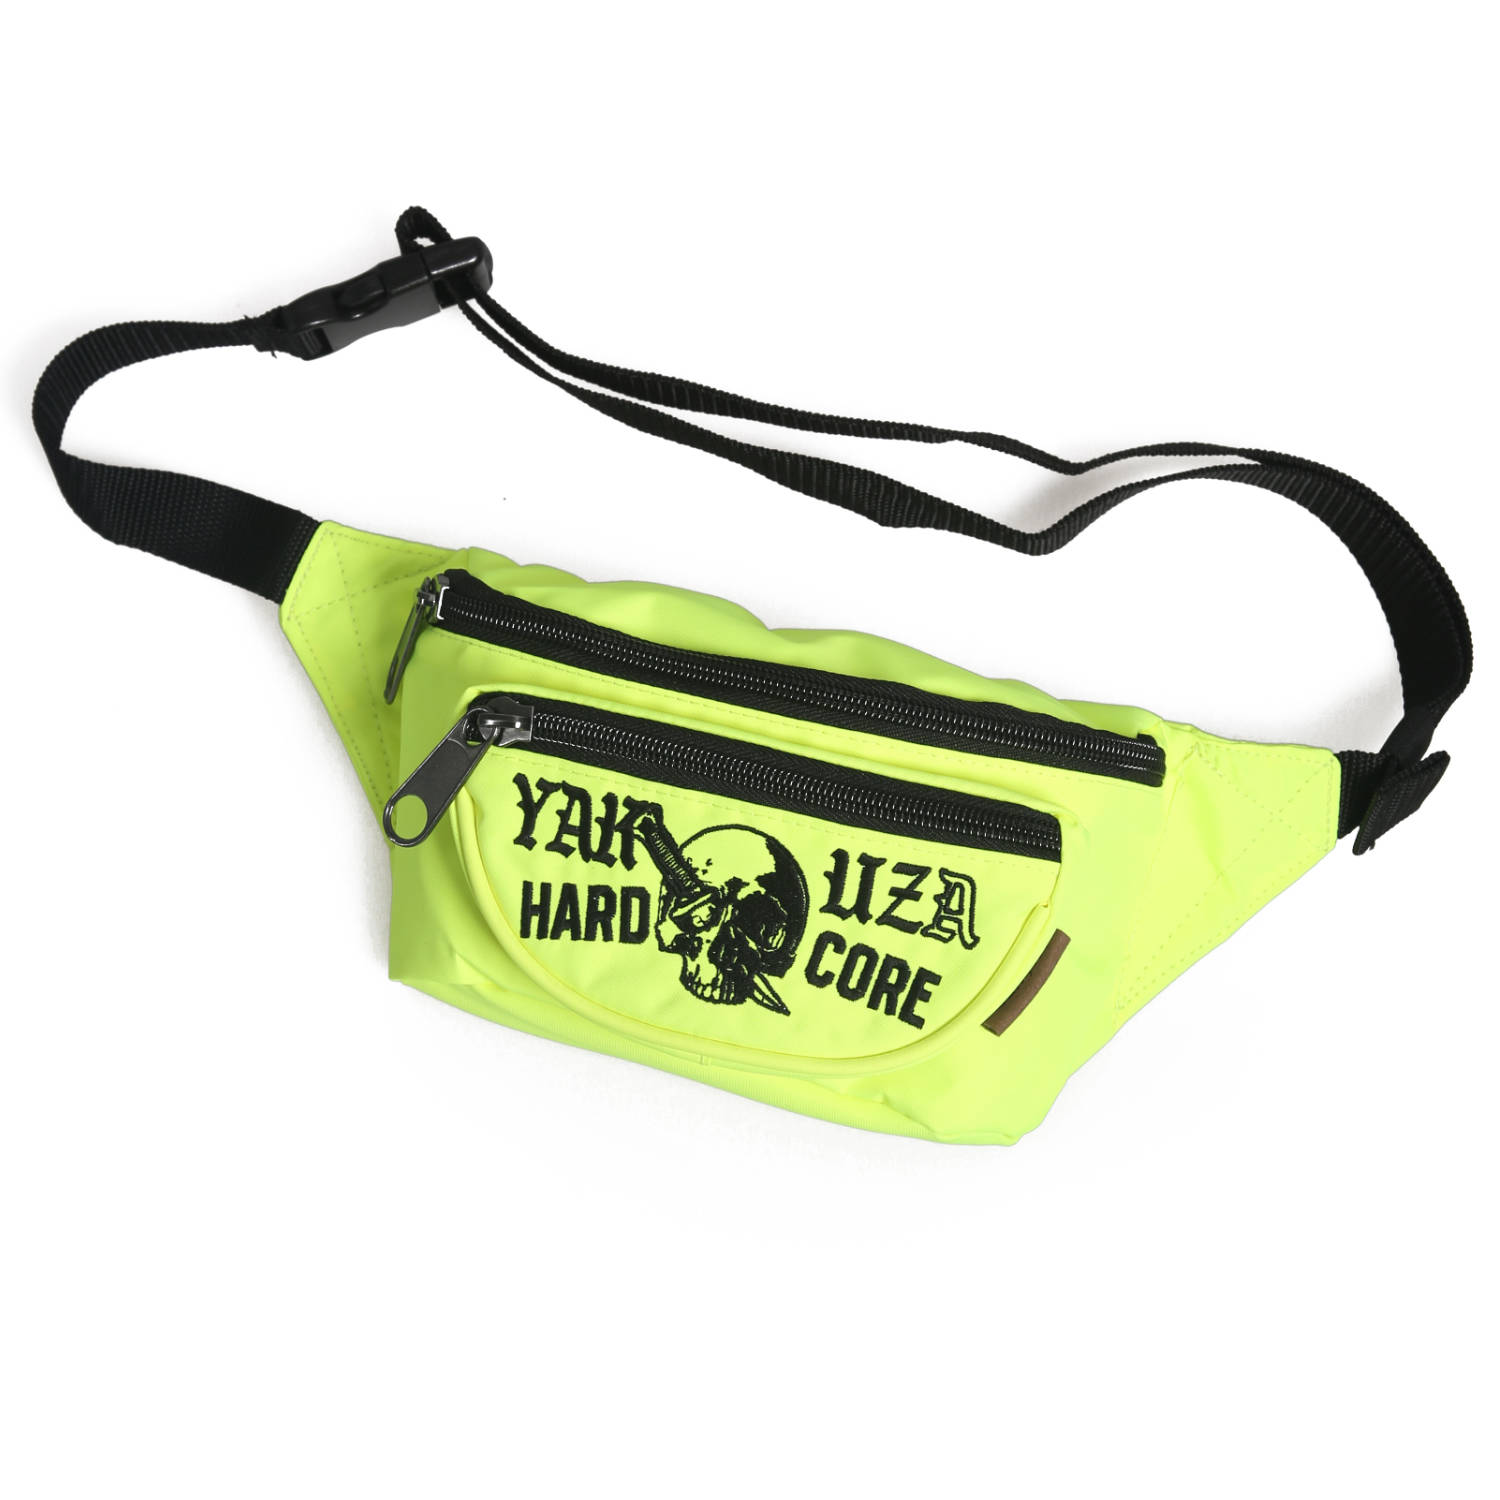 Yakuza, Hard893core Belt Bag, GTB14302 SAFYEL